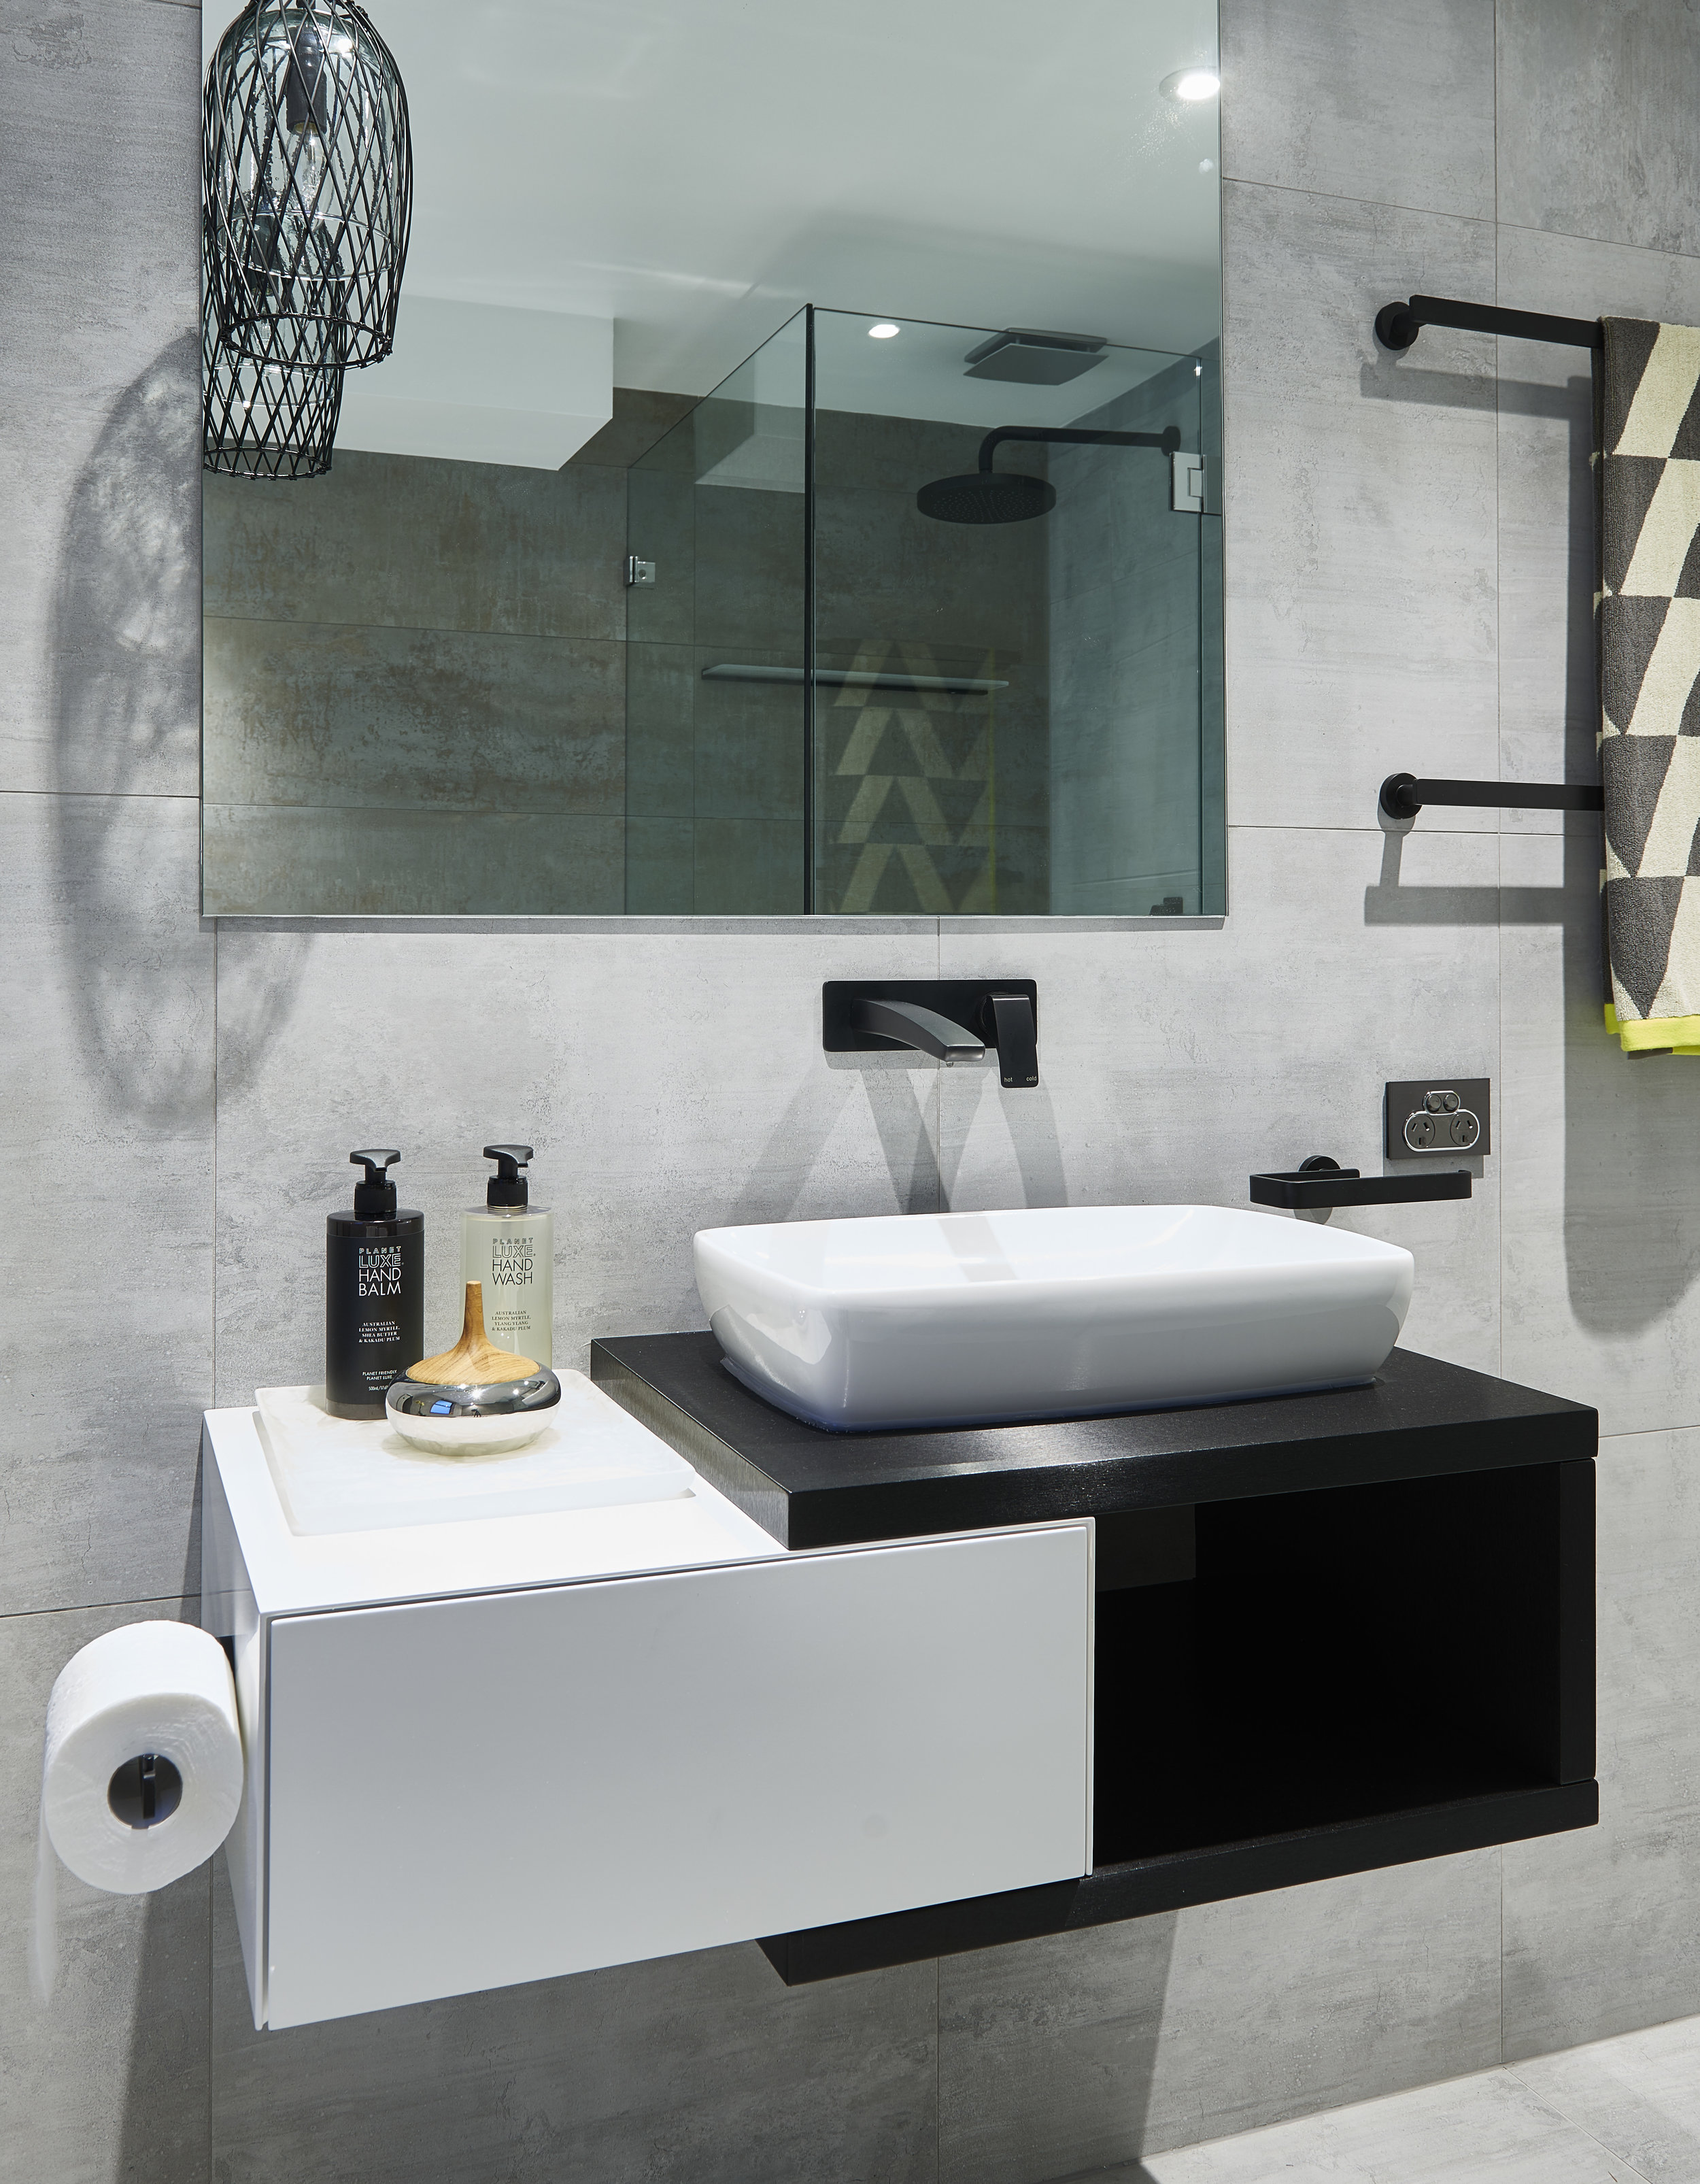 Lindfield Bathroom0124.jpg